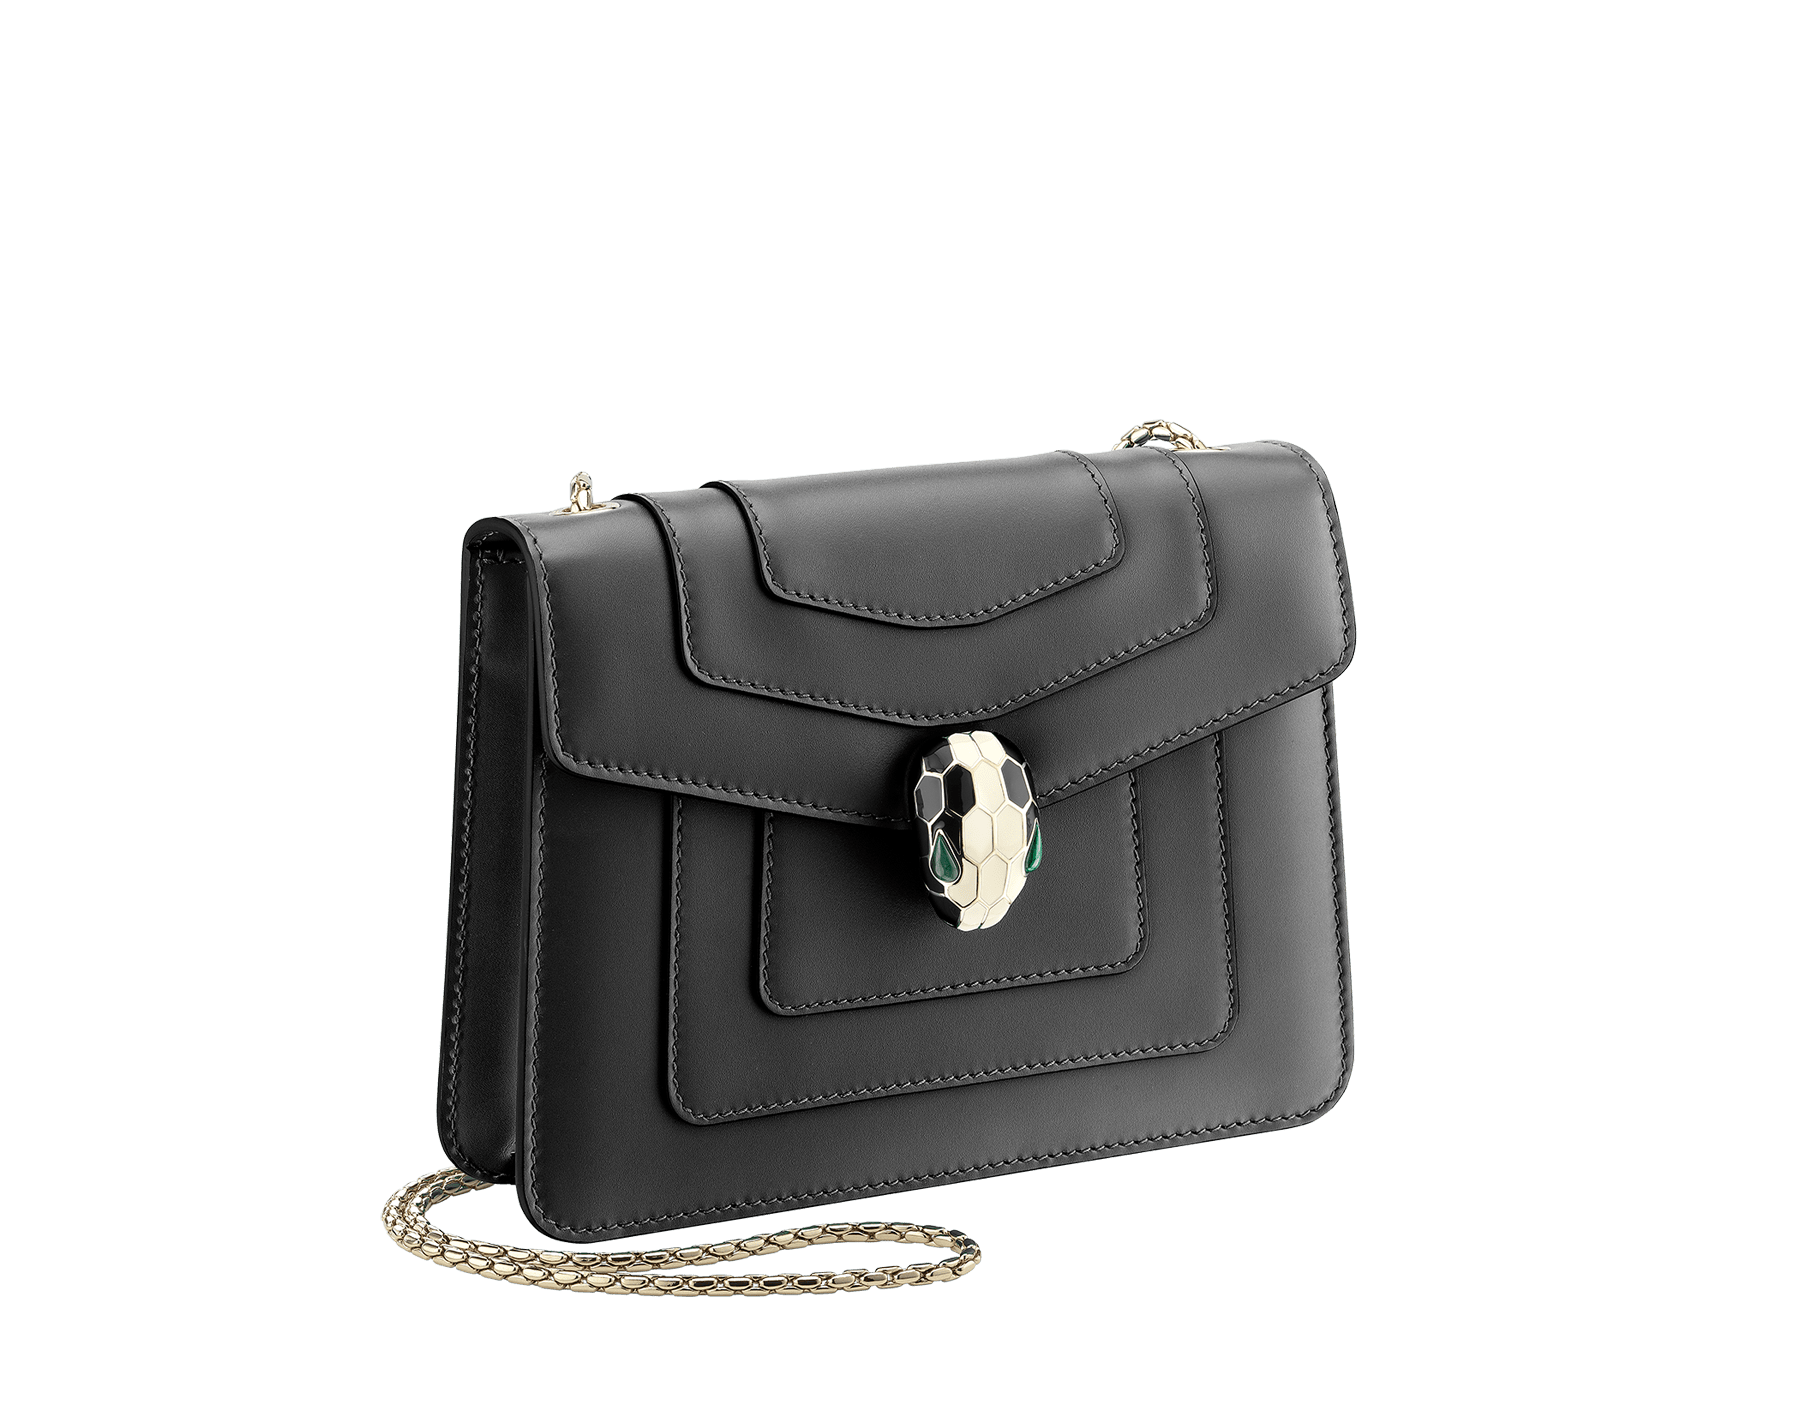 """Serpenti Forever"" crossbody bag in emerald green calf leather with amethyst purple gros grain internal lining. Iconic snakehead closure in light gold plated brass enriched with black and white agate enamel, and green malachite eyes. 422-CLa image 2"